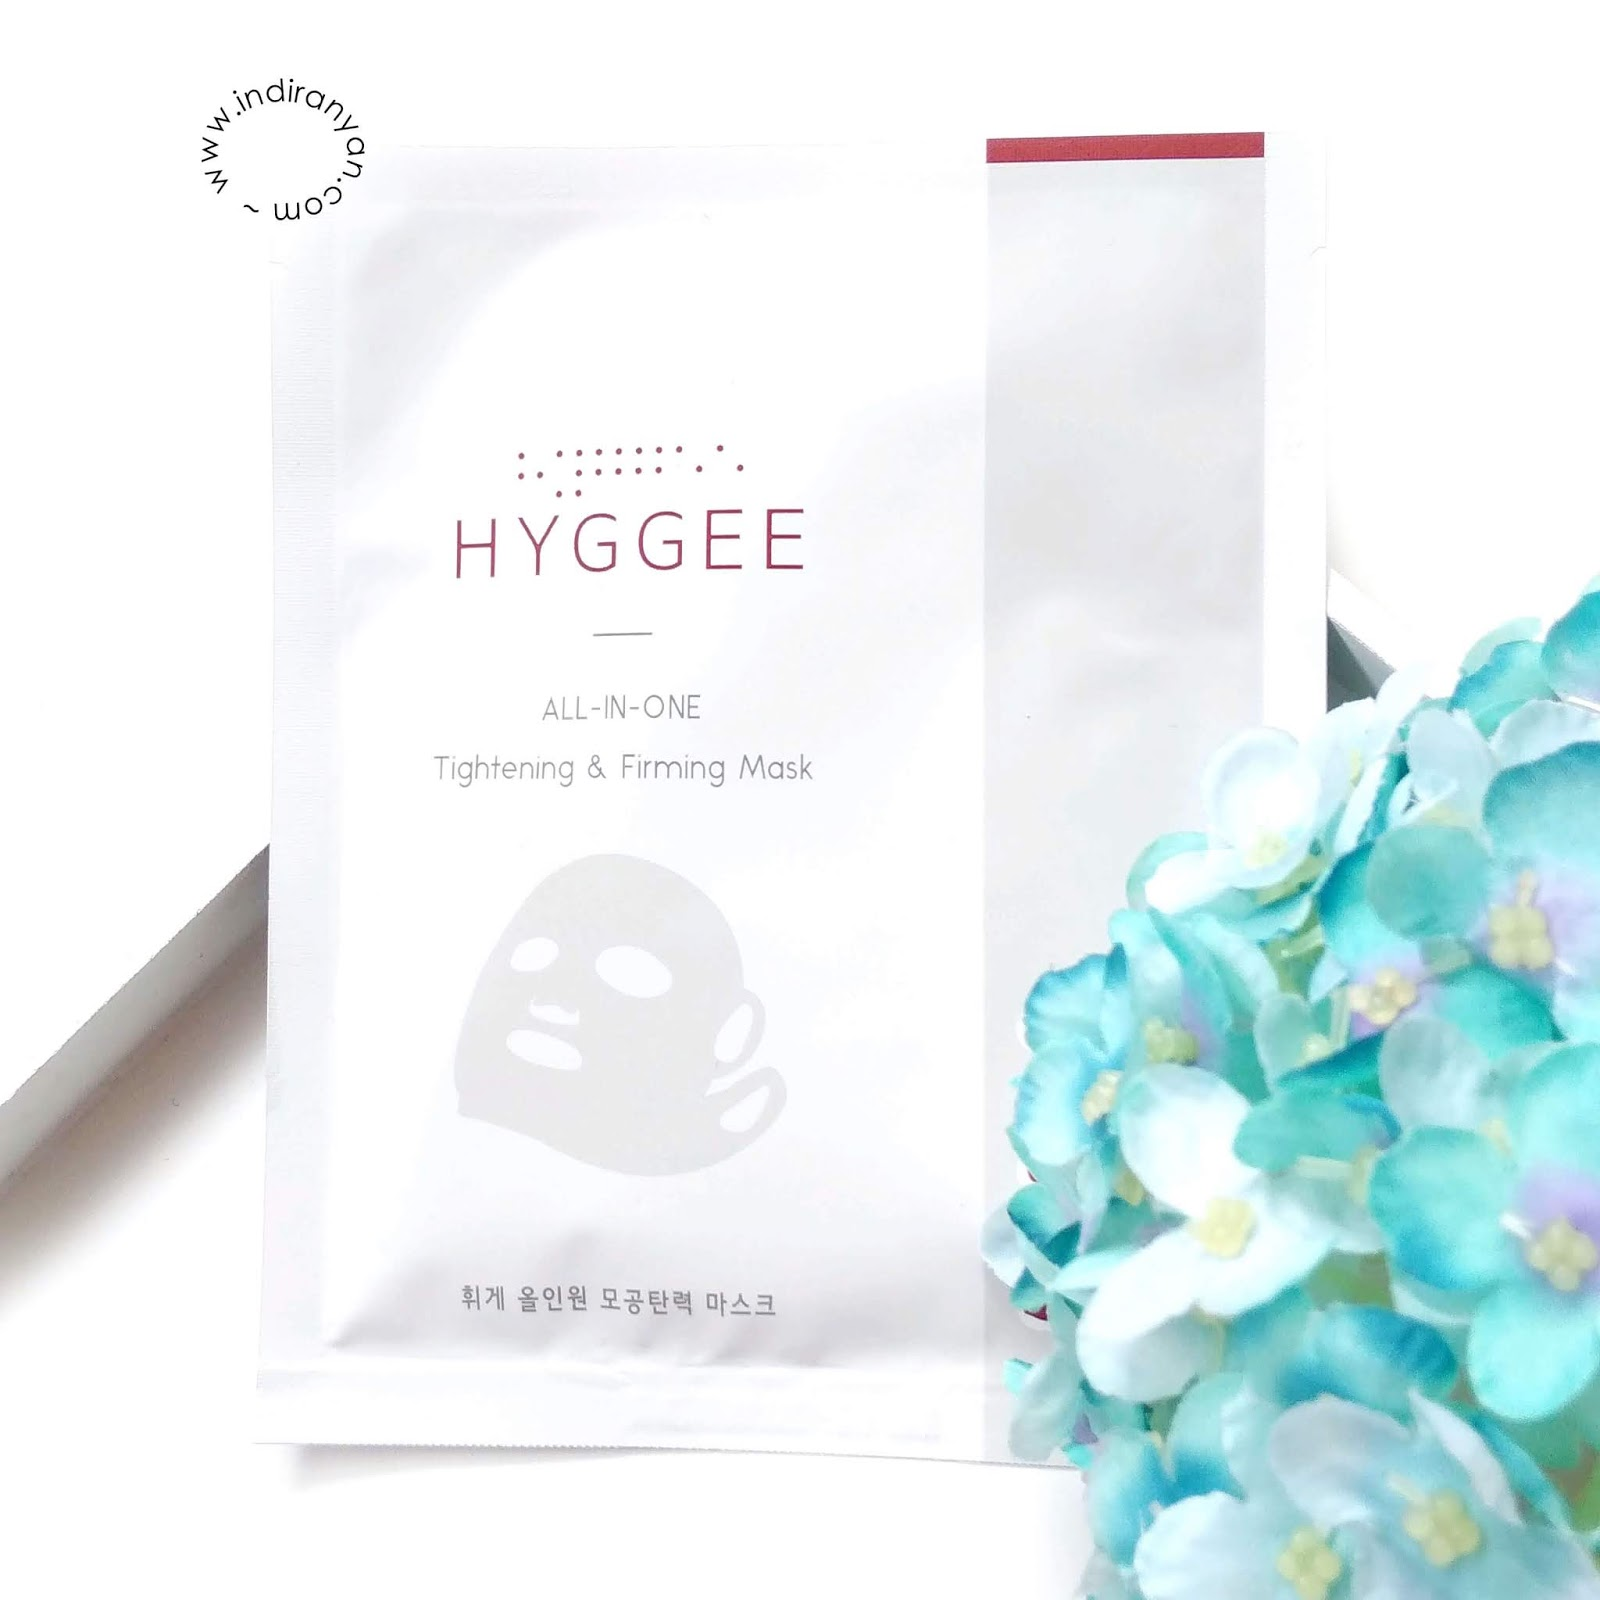 hyggee-all-in-one-tightening-firming-mask